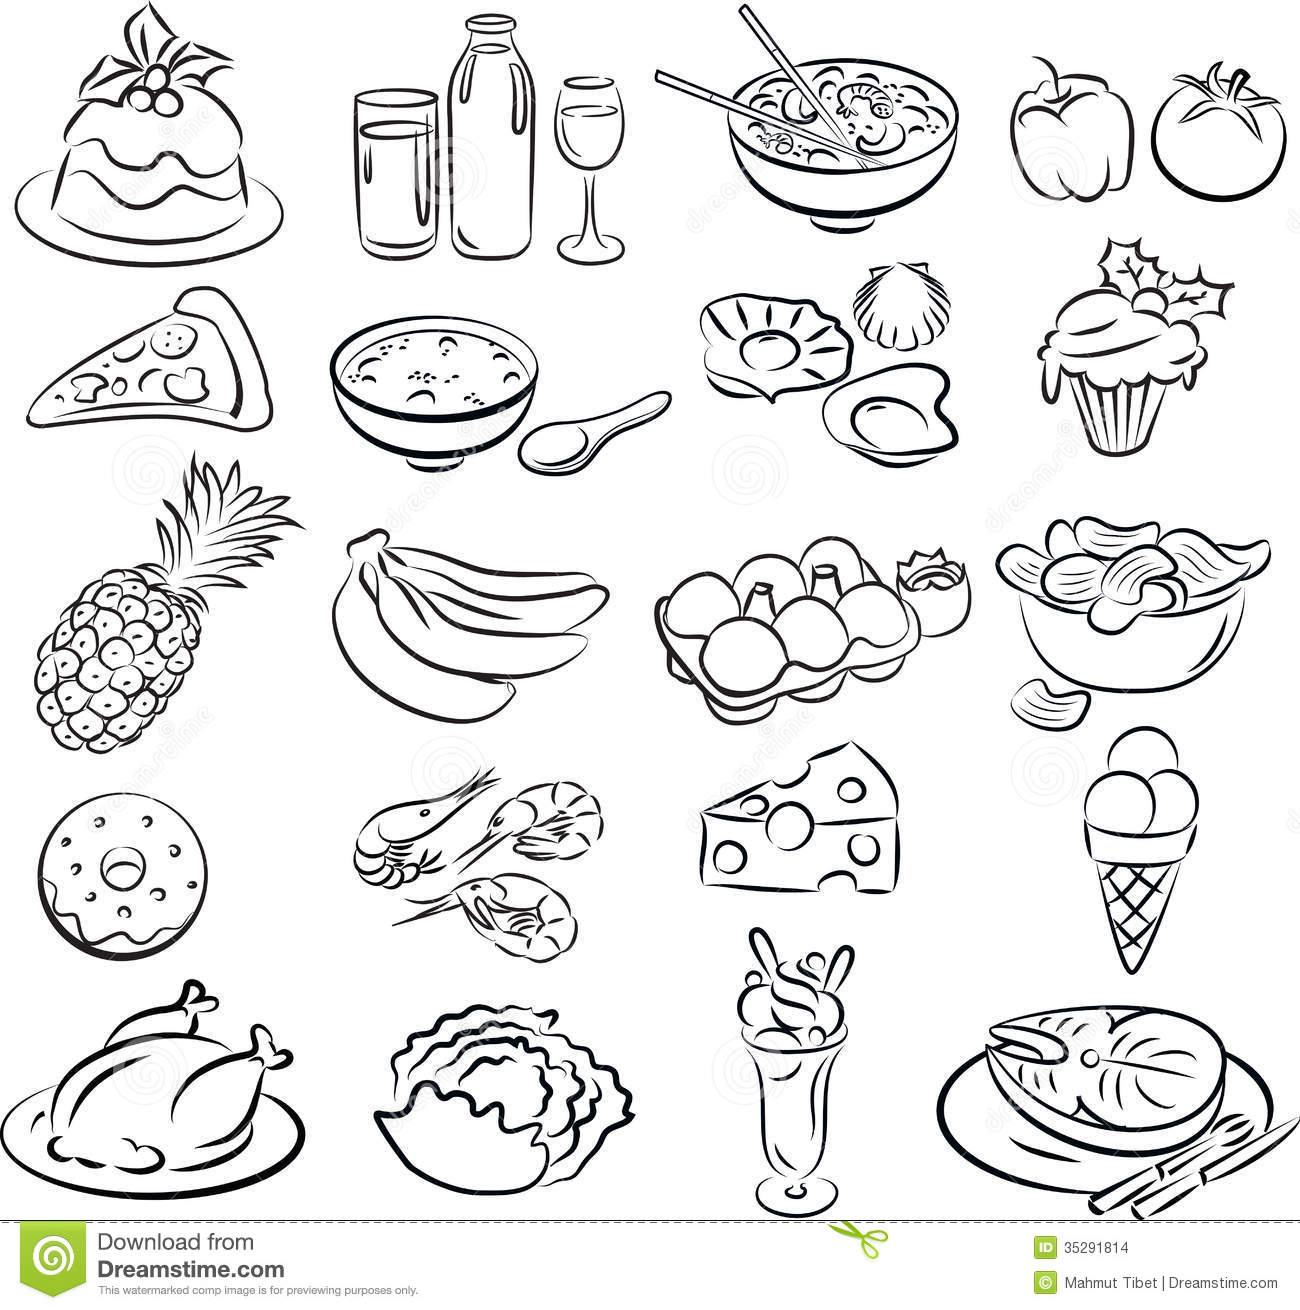 Foods Stock Images - Image: 35291814